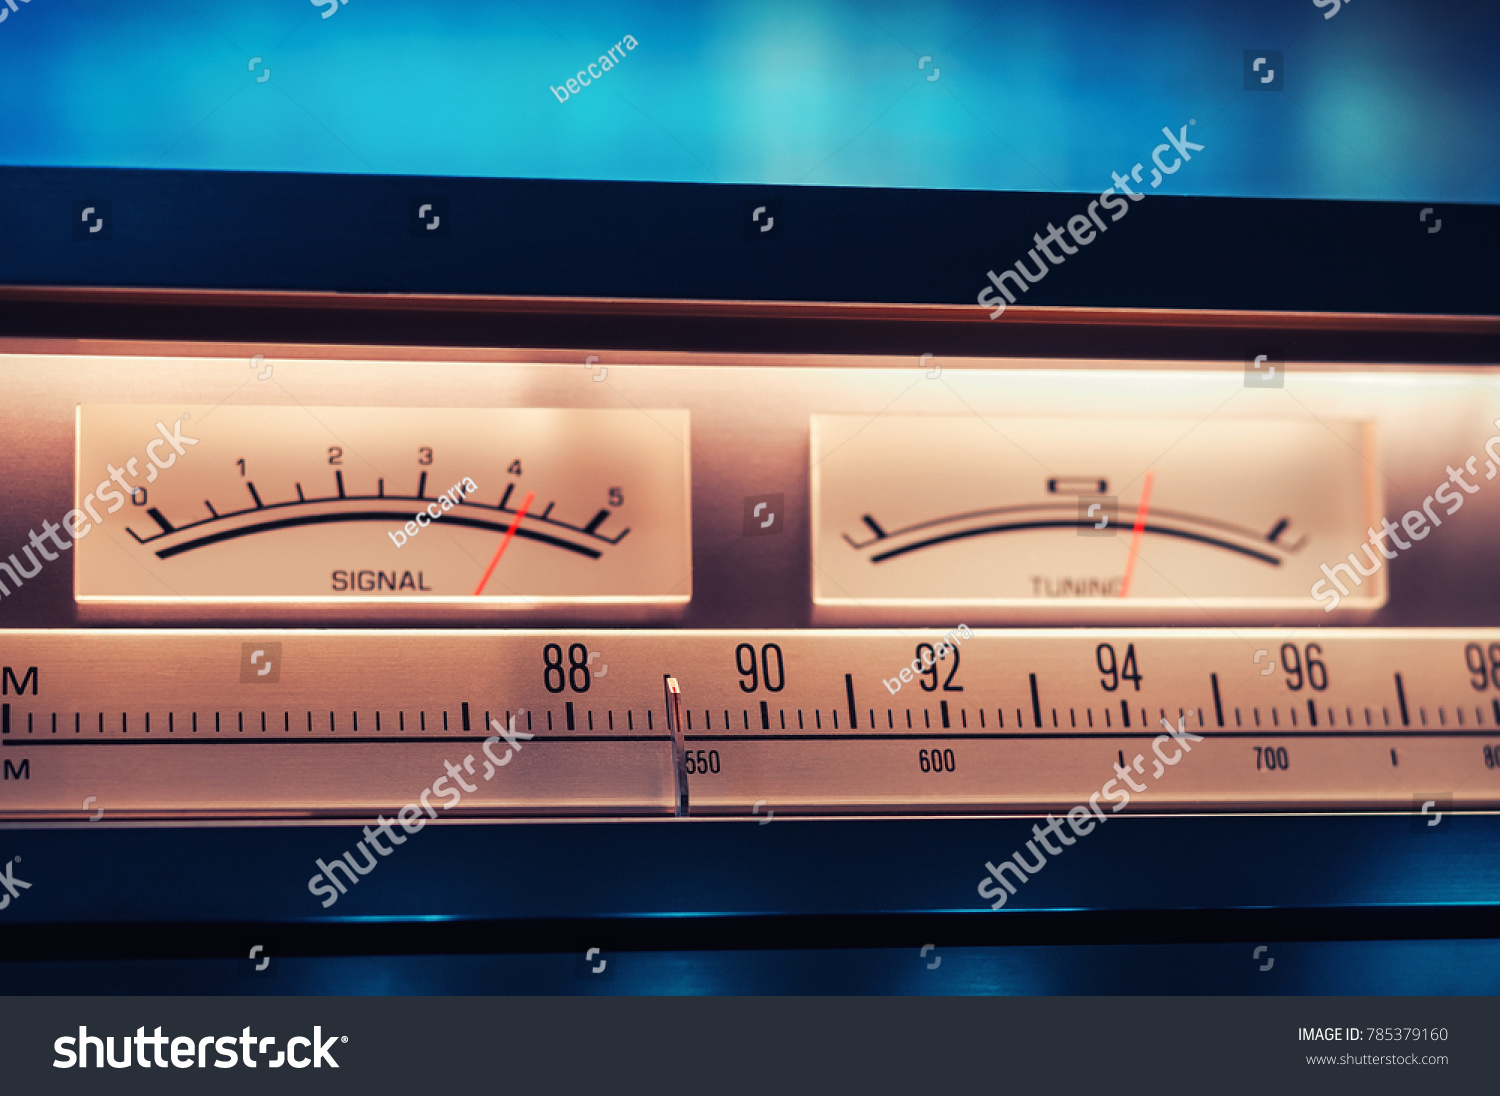 Vintage Amplifier Tuner Scale Vu Meters Stock Photo Edit Now Meter For Power Amplifiers With Closeup Shot